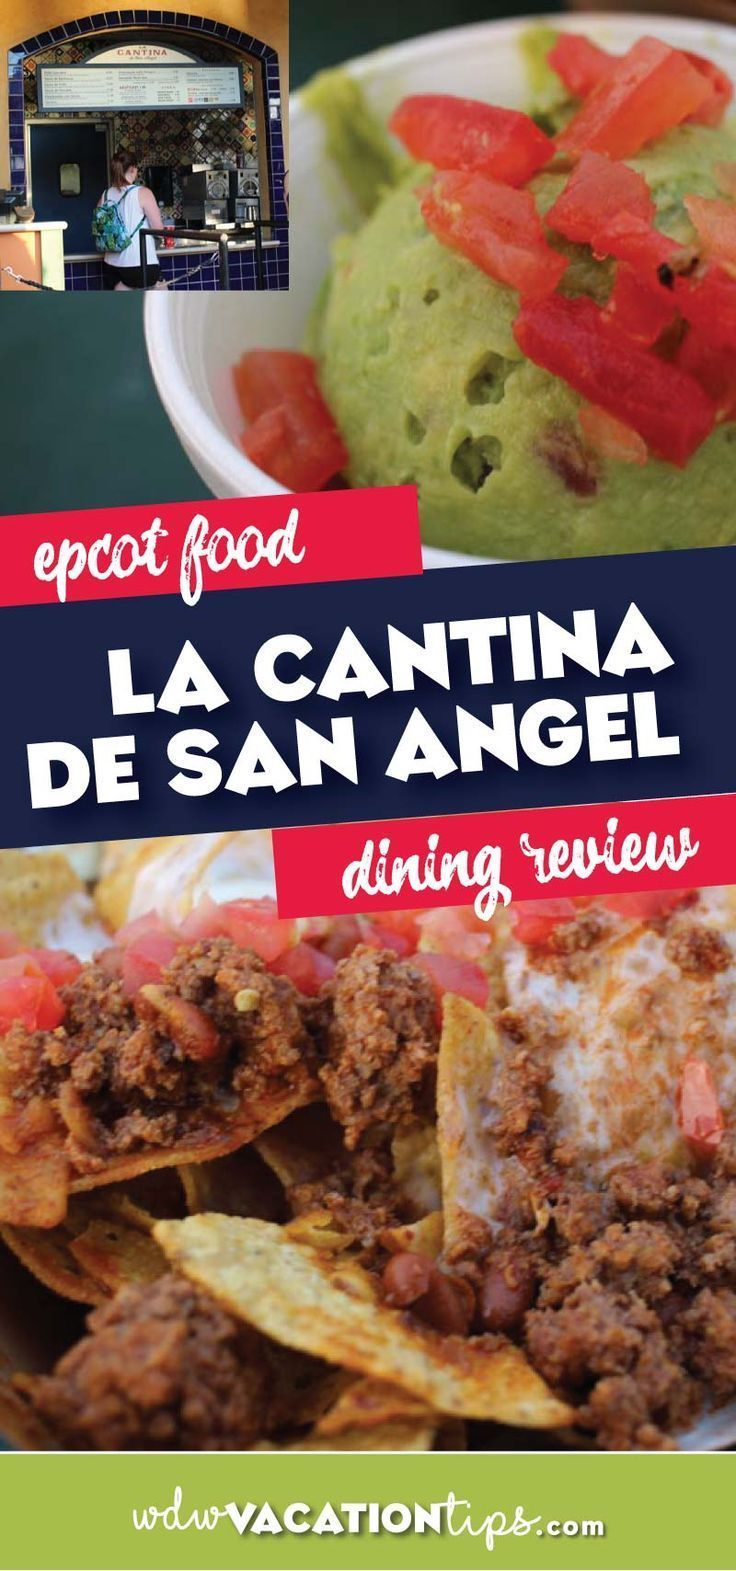 La Cantina de San Angel Dining Review • WDW Vacation Tips